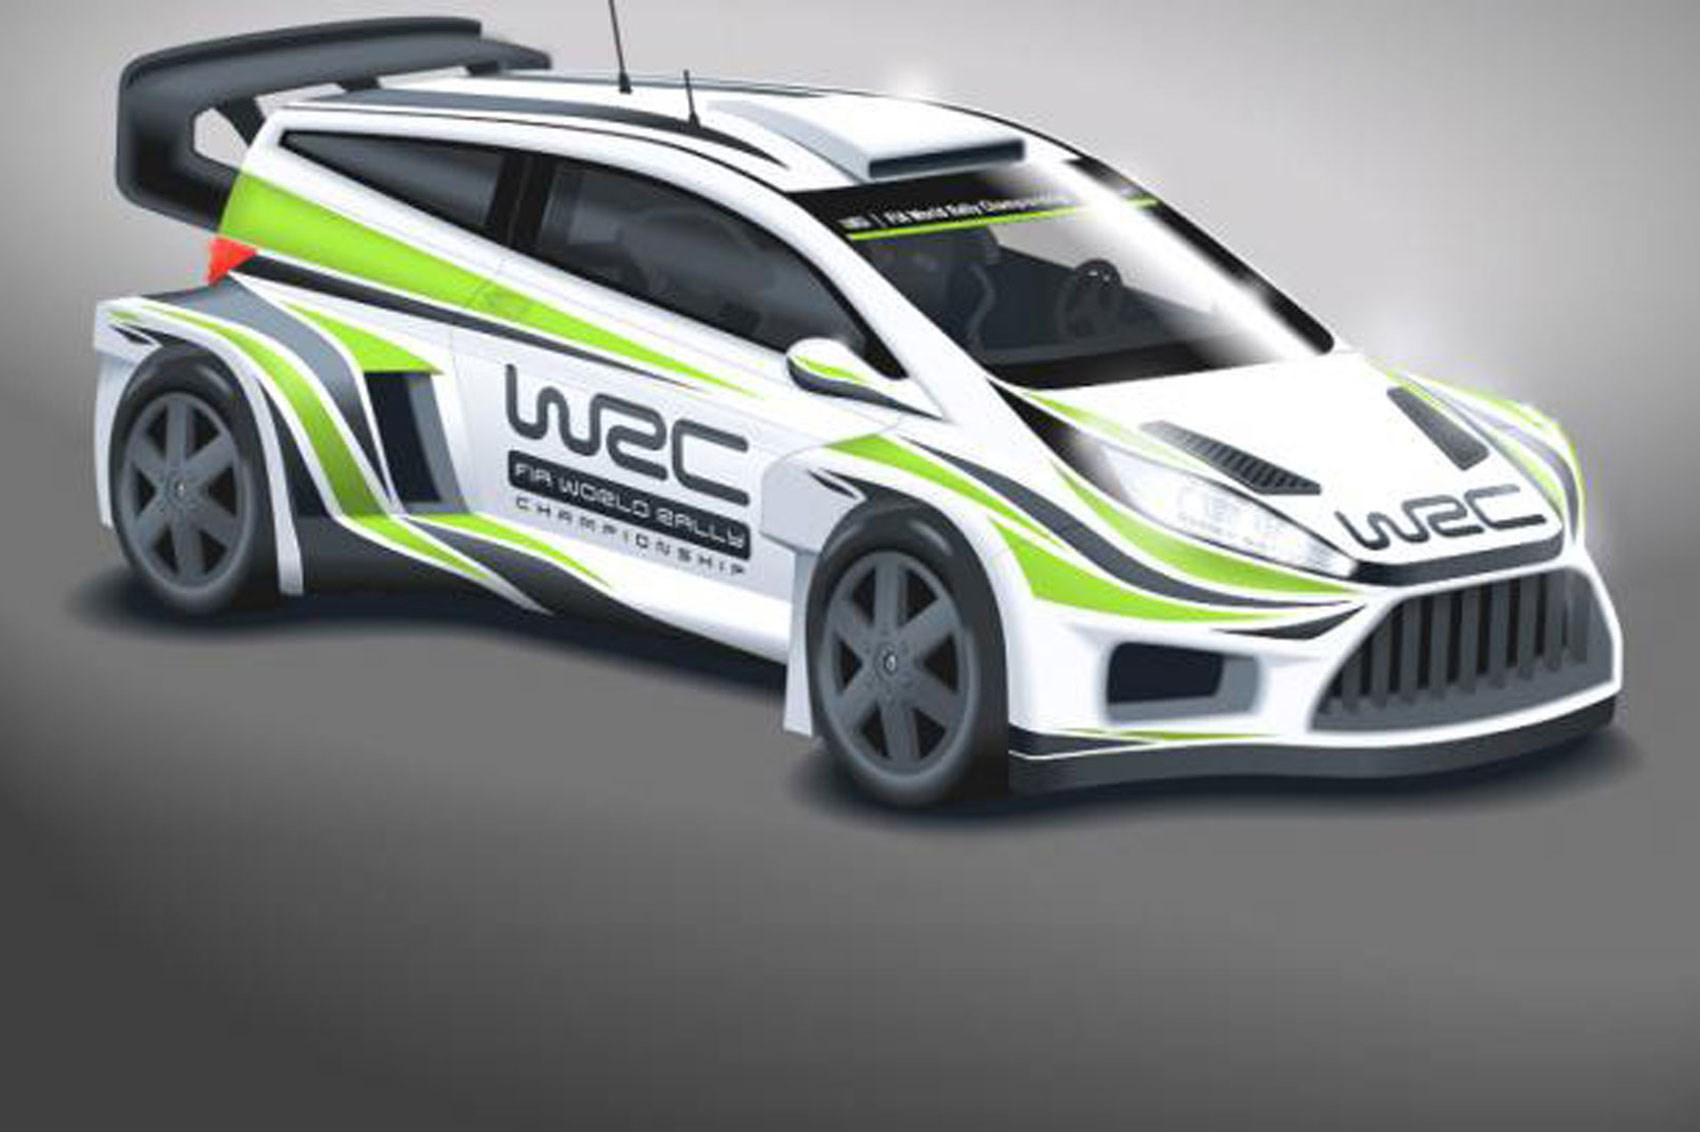 Ultrablogus  Unique Wild New Look For Wrc Cars In  By Car Magazine With Likable Wrc Cars Will Get Wider Bodies Bigger Wings And More Power For  With Enchanting Oldsmobile Toronado Interior Also  Dodge Charger Interior In Addition Range Rover Evoque Red Interior And Ssangyong Kyron Interior As Well As Nissan Maxima  Interior Additionally  Tacoma Interior From Carmagazinecouk With Ultrablogus  Likable Wild New Look For Wrc Cars In  By Car Magazine With Enchanting Wrc Cars Will Get Wider Bodies Bigger Wings And More Power For  And Unique Oldsmobile Toronado Interior Also  Dodge Charger Interior In Addition Range Rover Evoque Red Interior From Carmagazinecouk